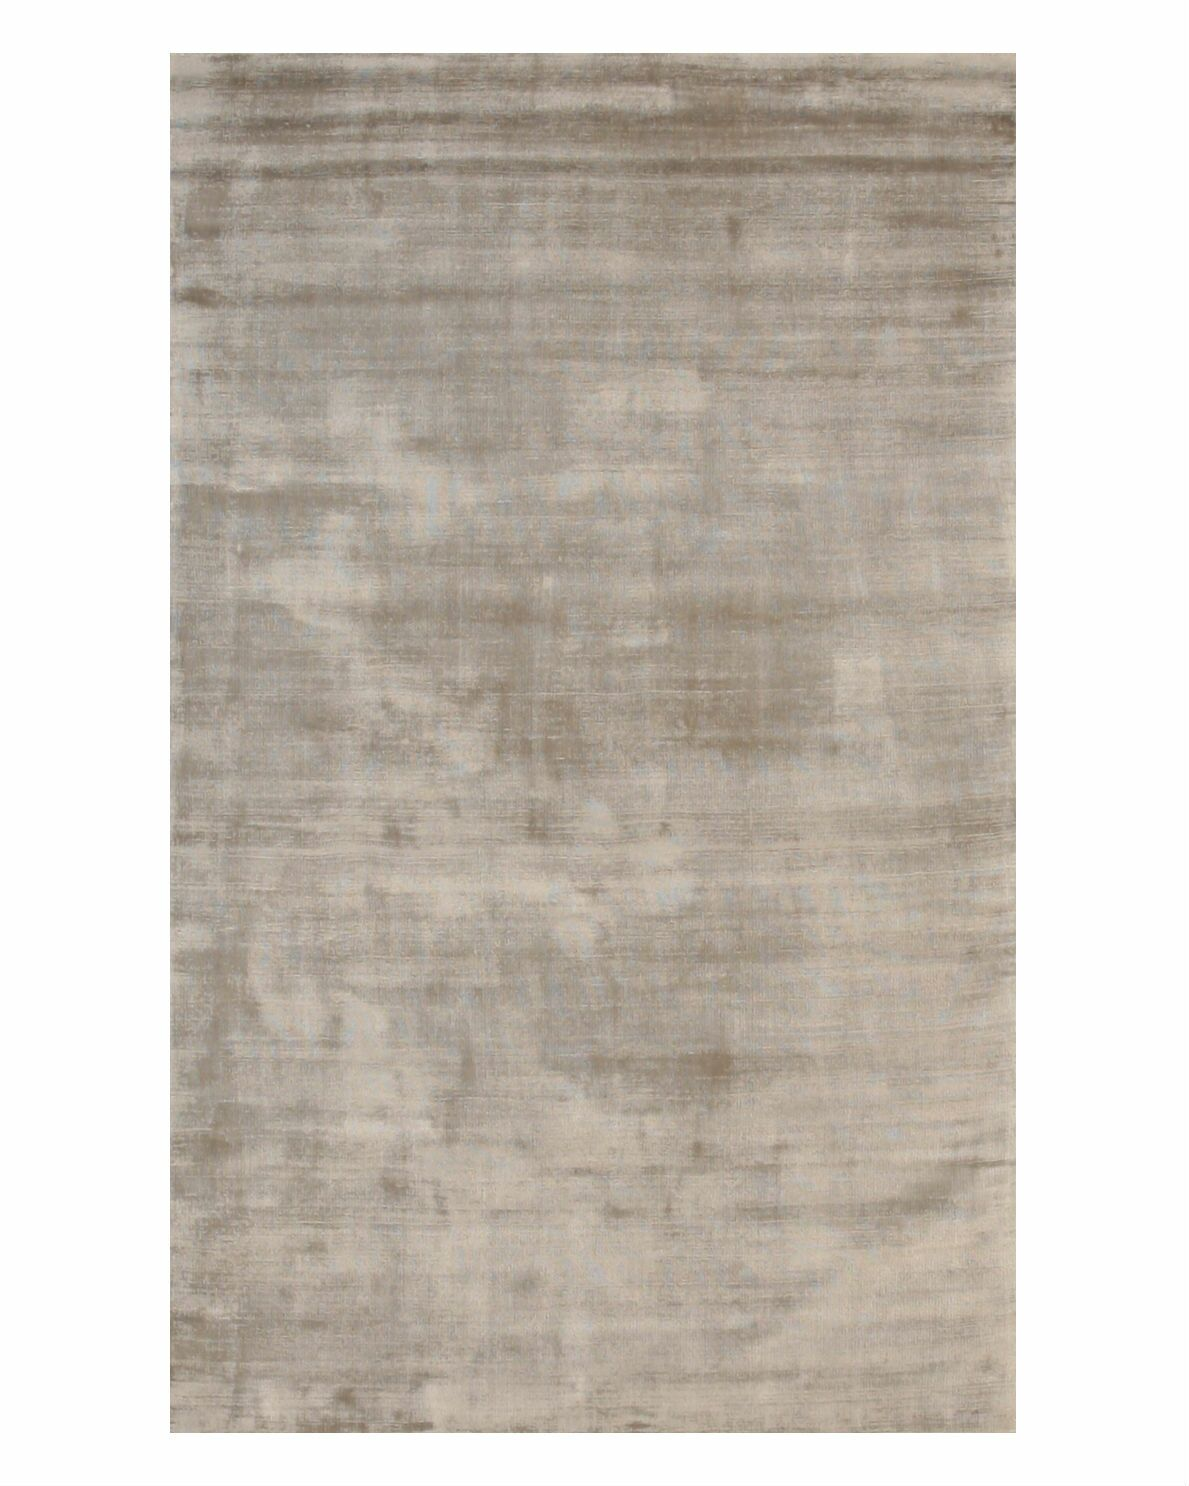 Gerow Viscose Solid Random Hand-Woven Silver Area Rug Rug Size: Rectangle 7'9